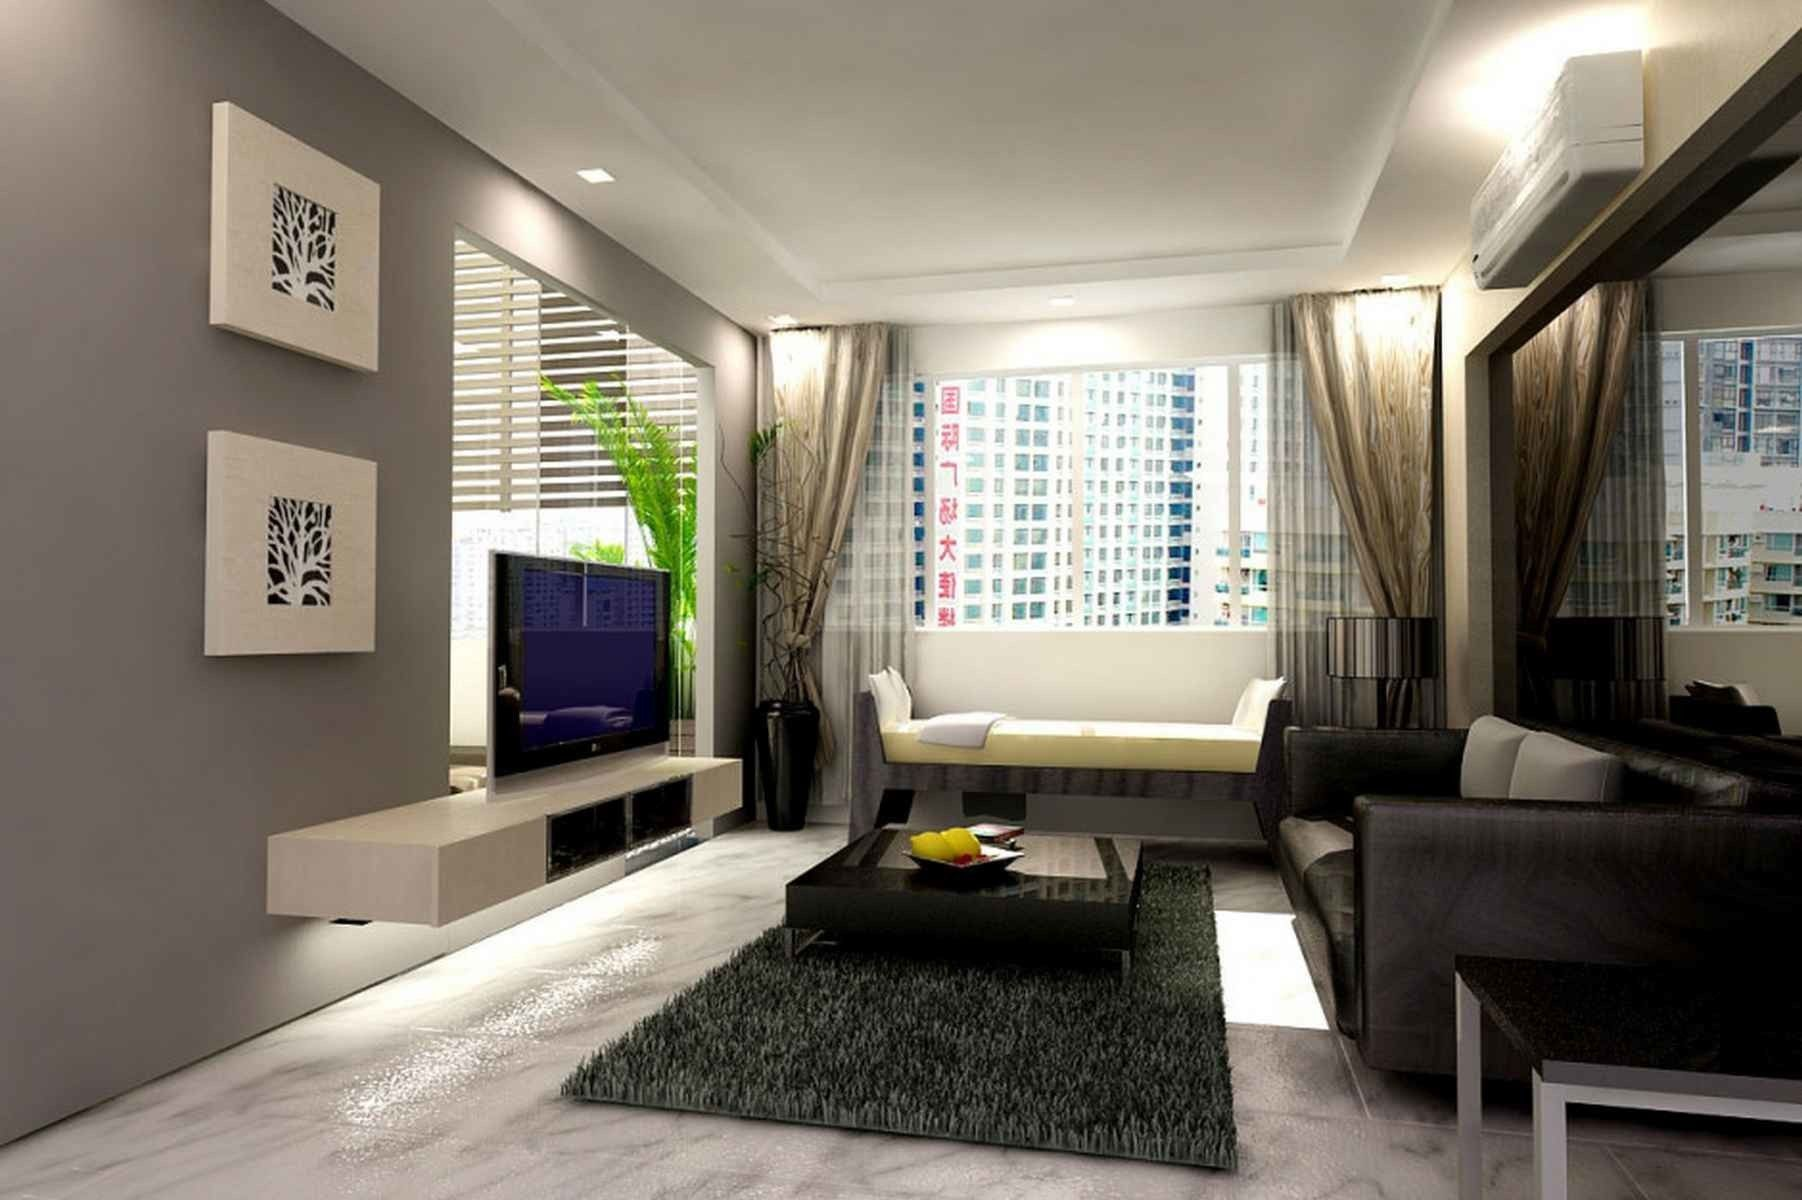 Image Result For Living Room Decor Ideas South Africa Apartment Living Room Design Apartment Living Room Small Living Rooms